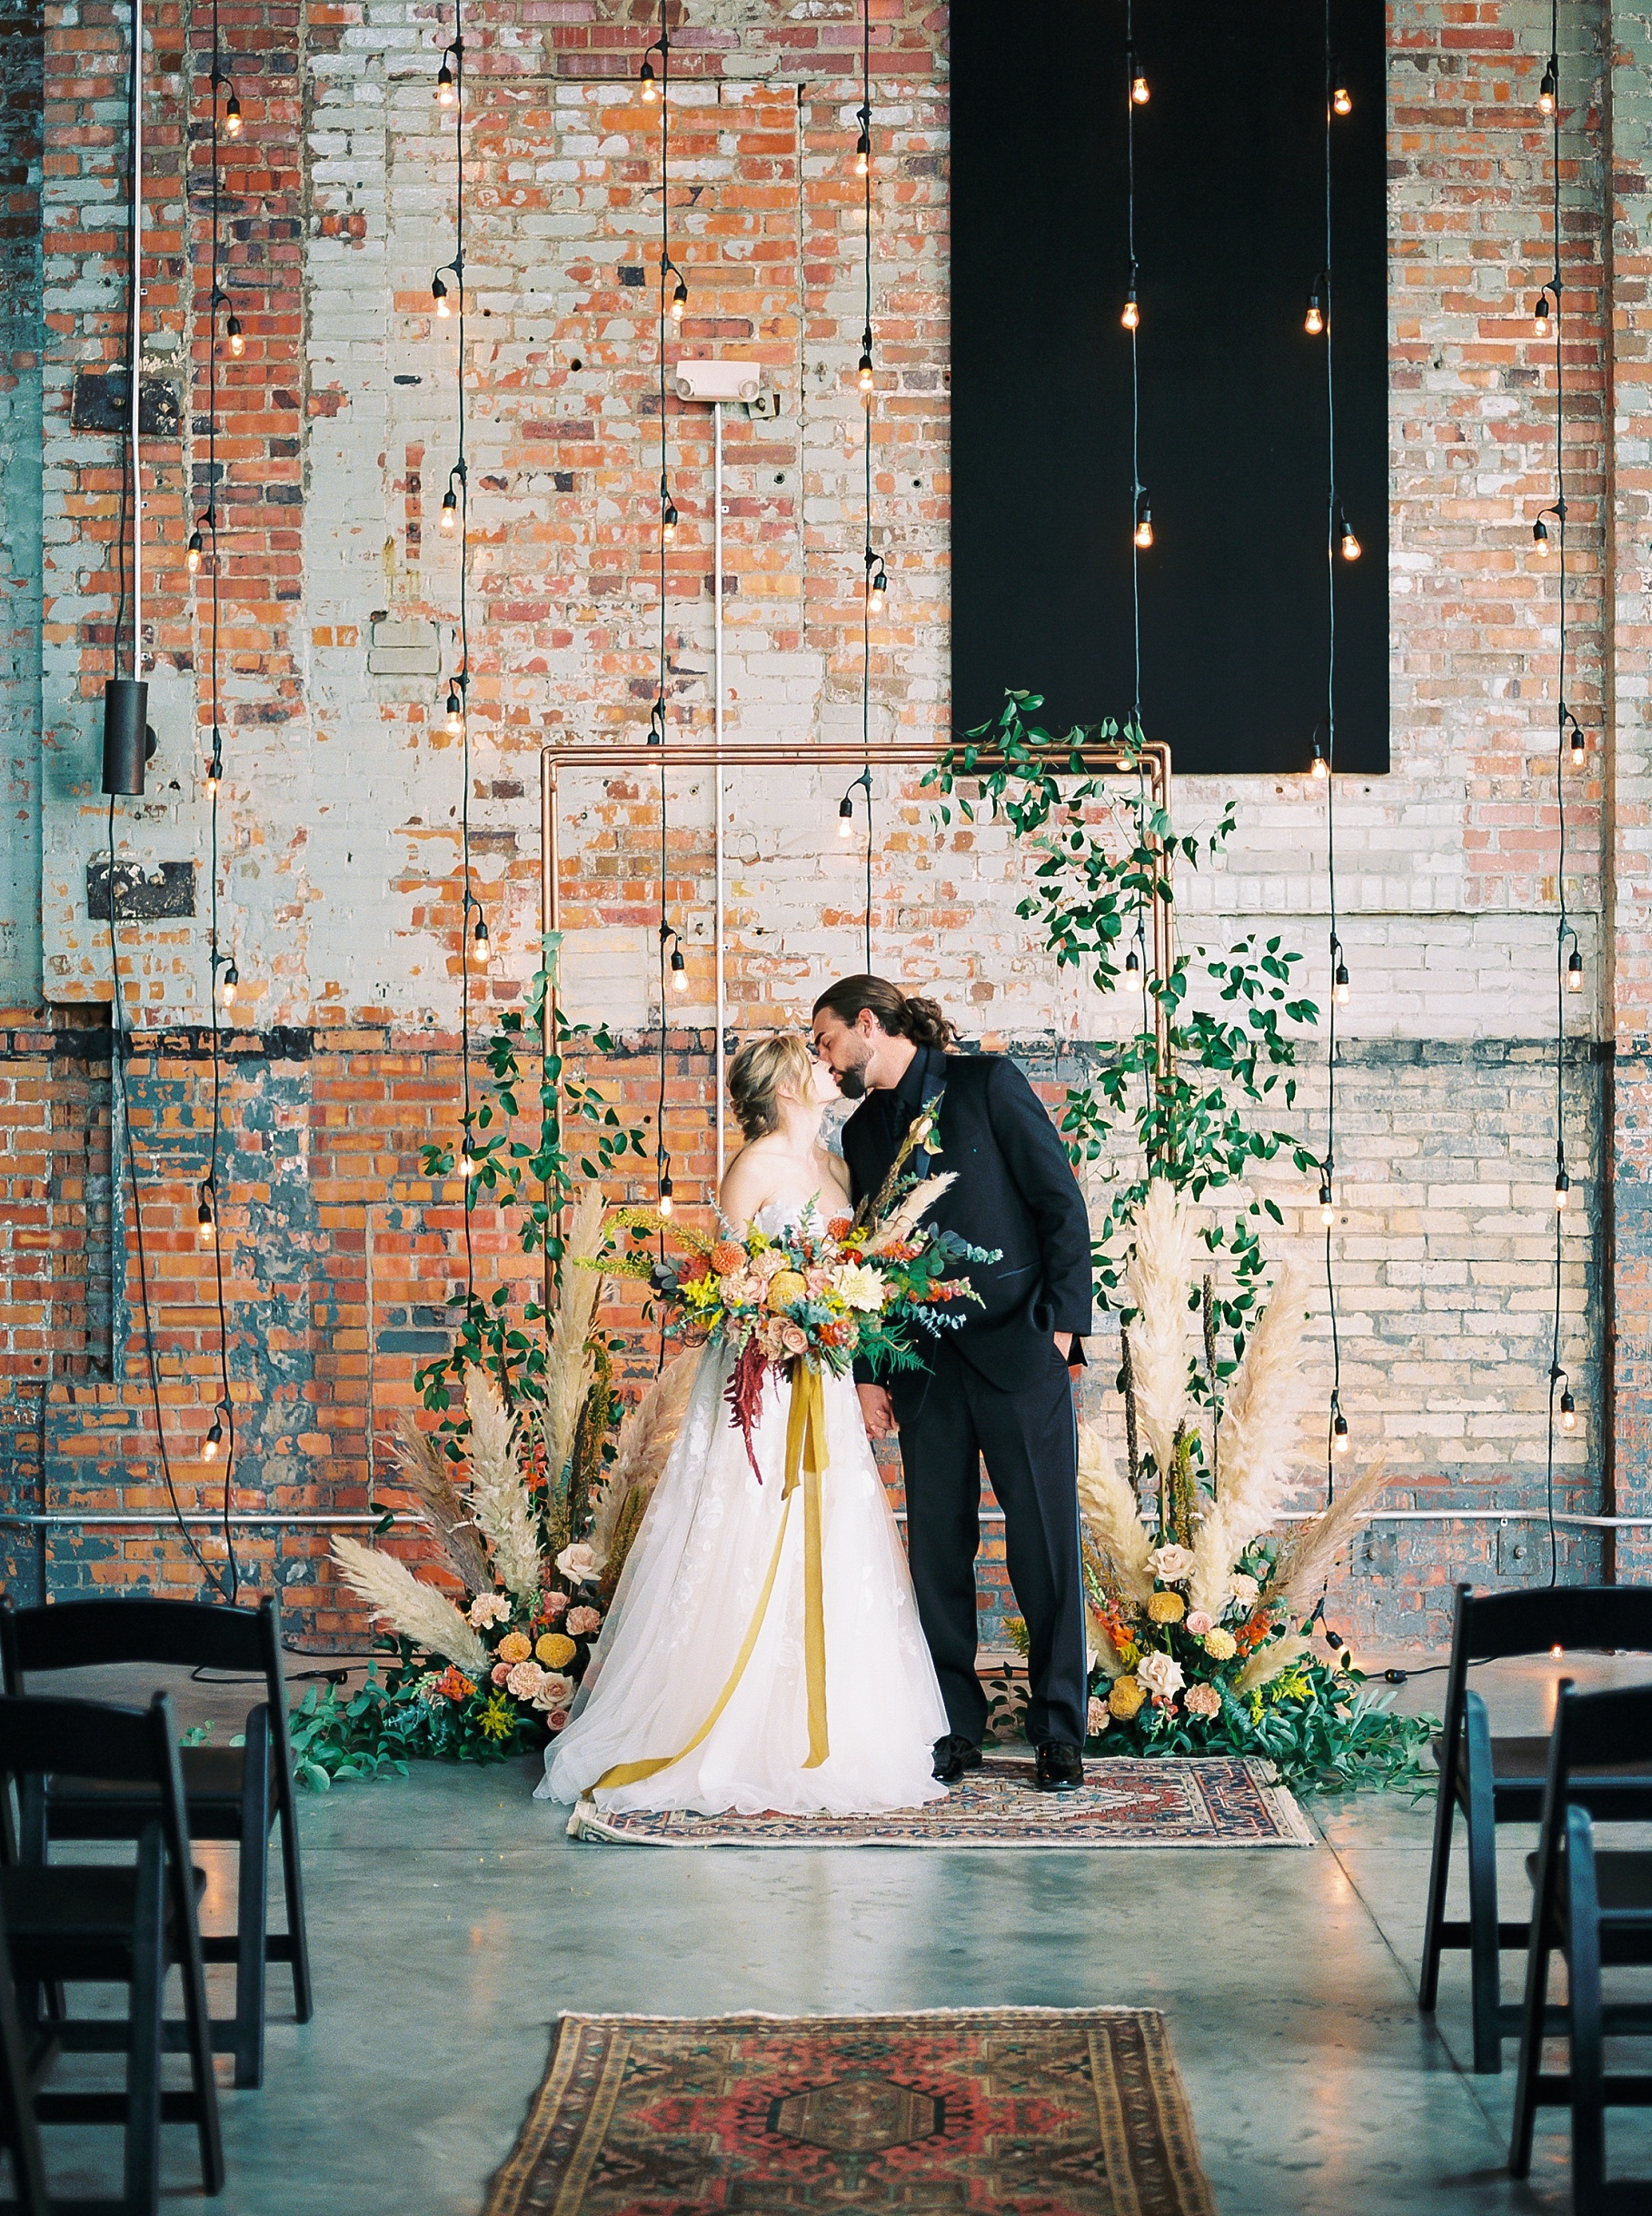 Urban Romance Wedding with Copper Accents at The Millbottom by Kelsi Kliethermes Photography Best Columbia Missouri Wedding Photographer_0065.jpg